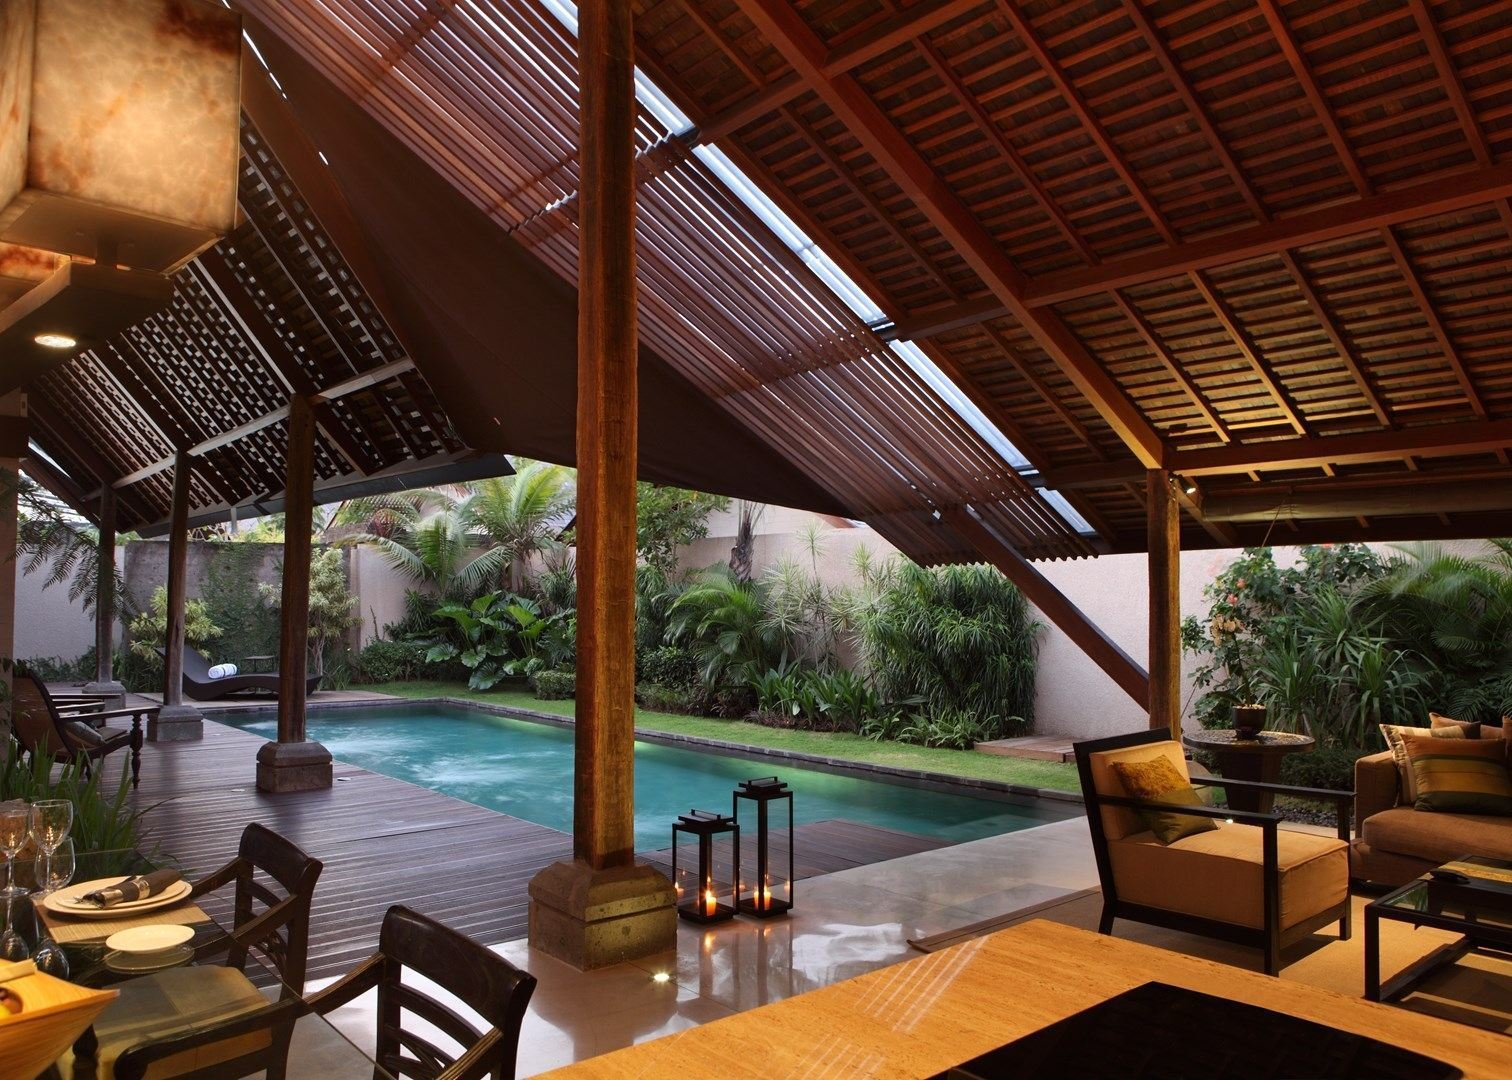 Tucked away in the coastal village of Canggu, Ametis Villa offers three different styles of villas that all come with their own kitchens, private pools and lush tropical gardens.